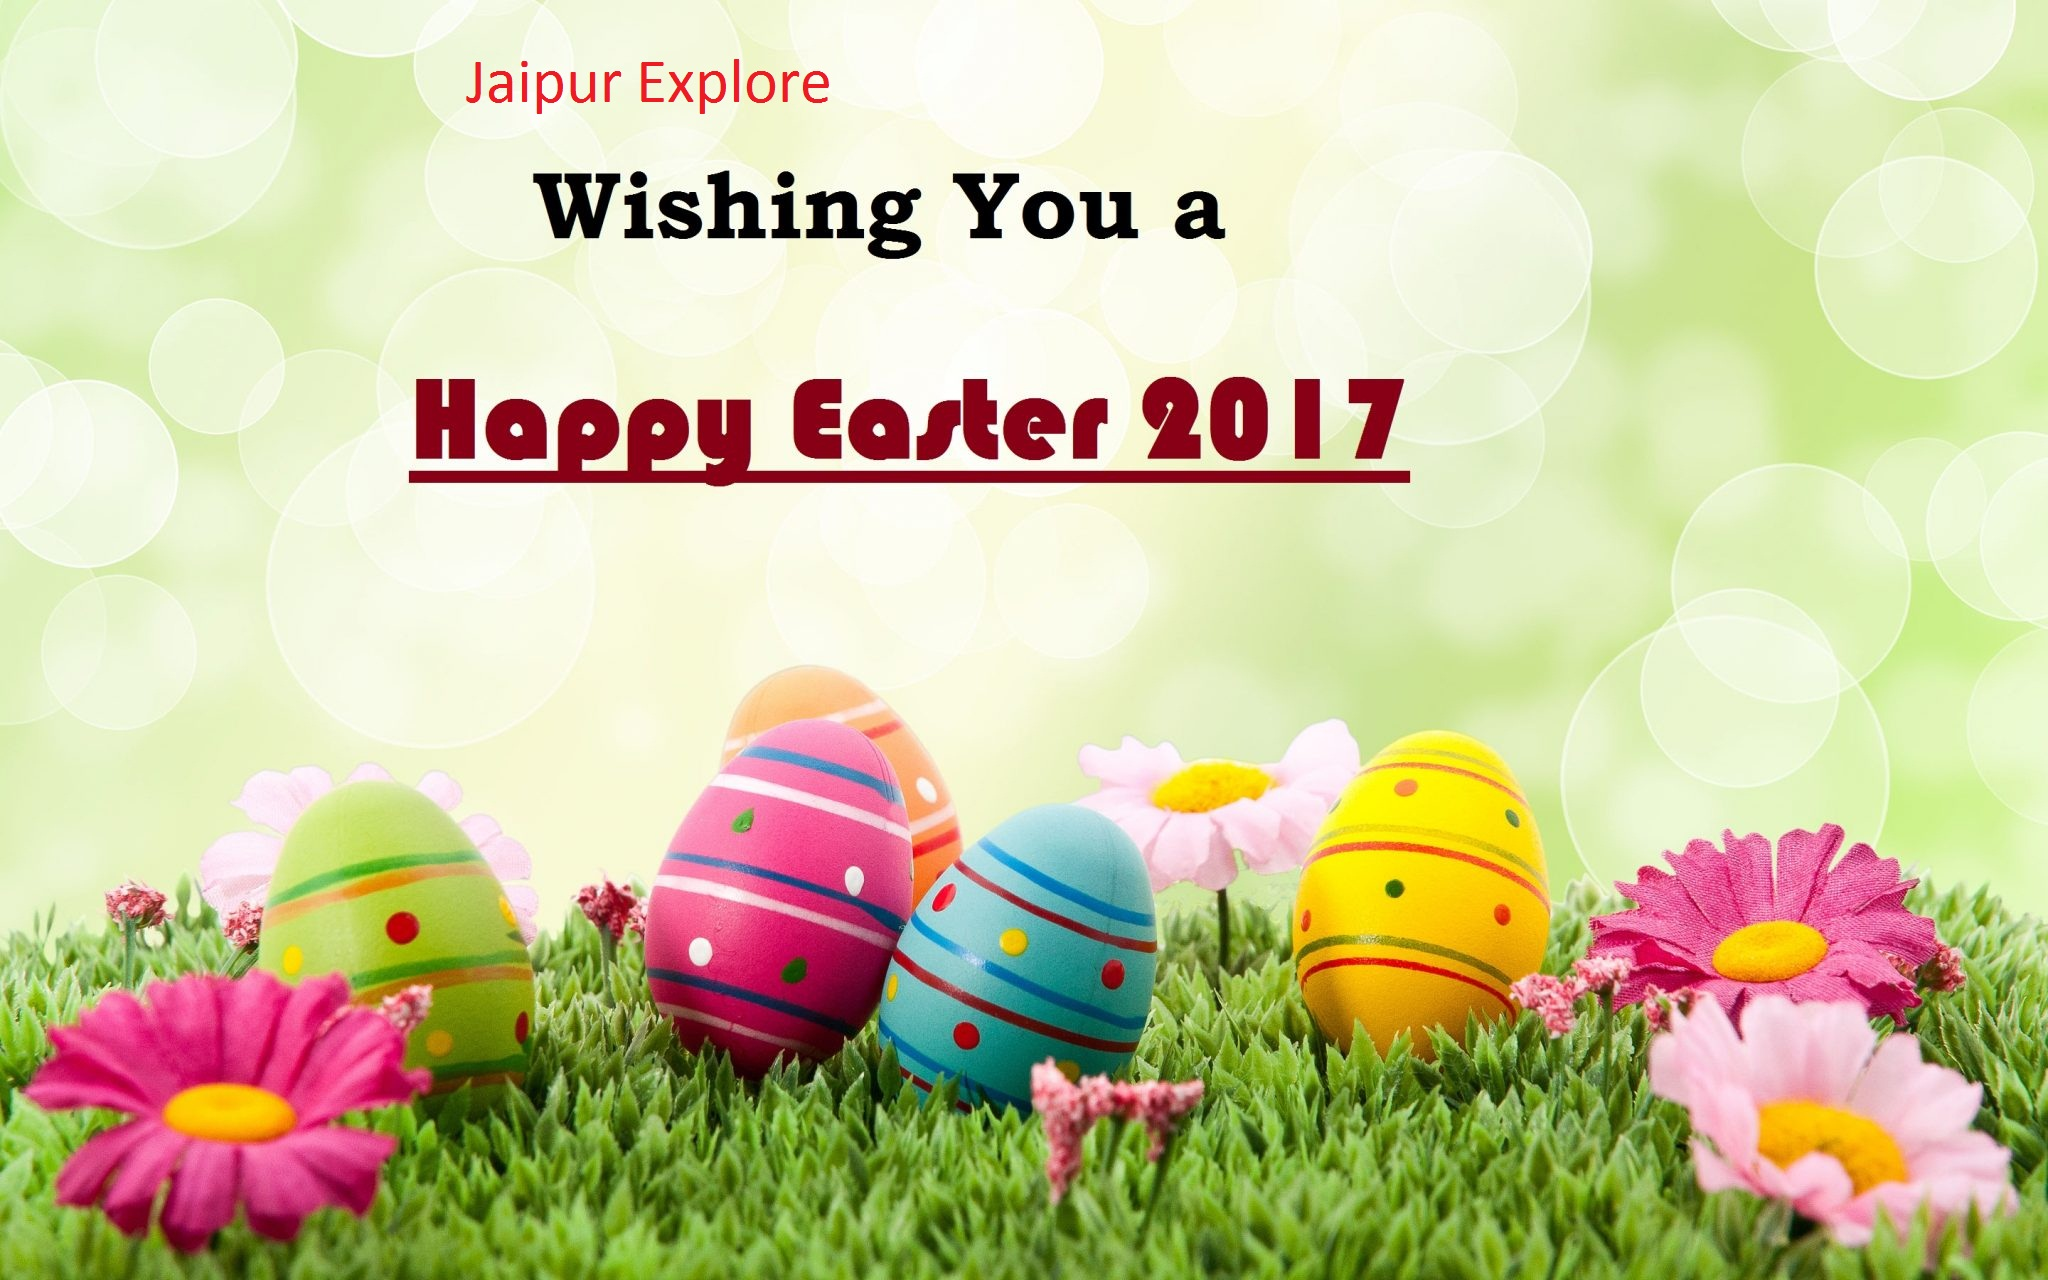 Happy Easter Sunday Greetings 2017 Jaipur Explore